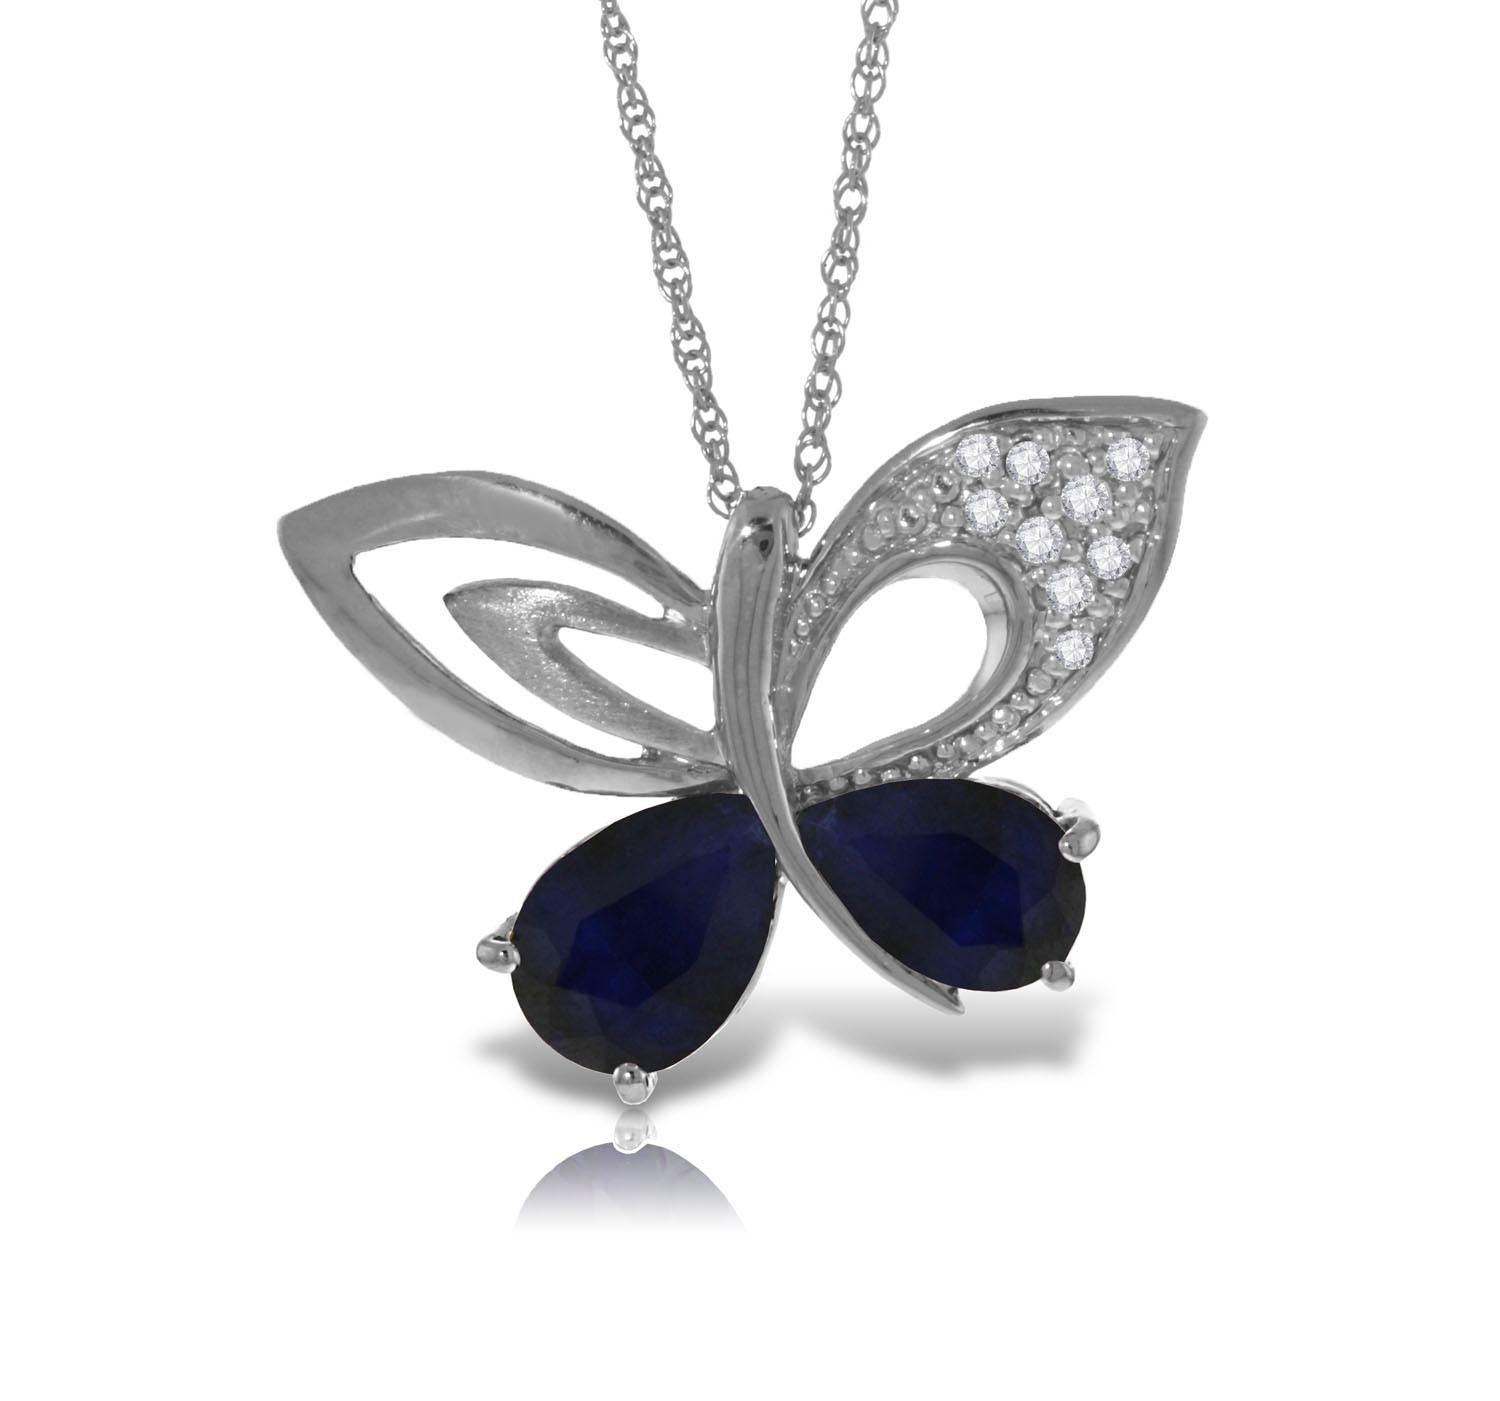 halo jennie kwon necklace designs sapphire products